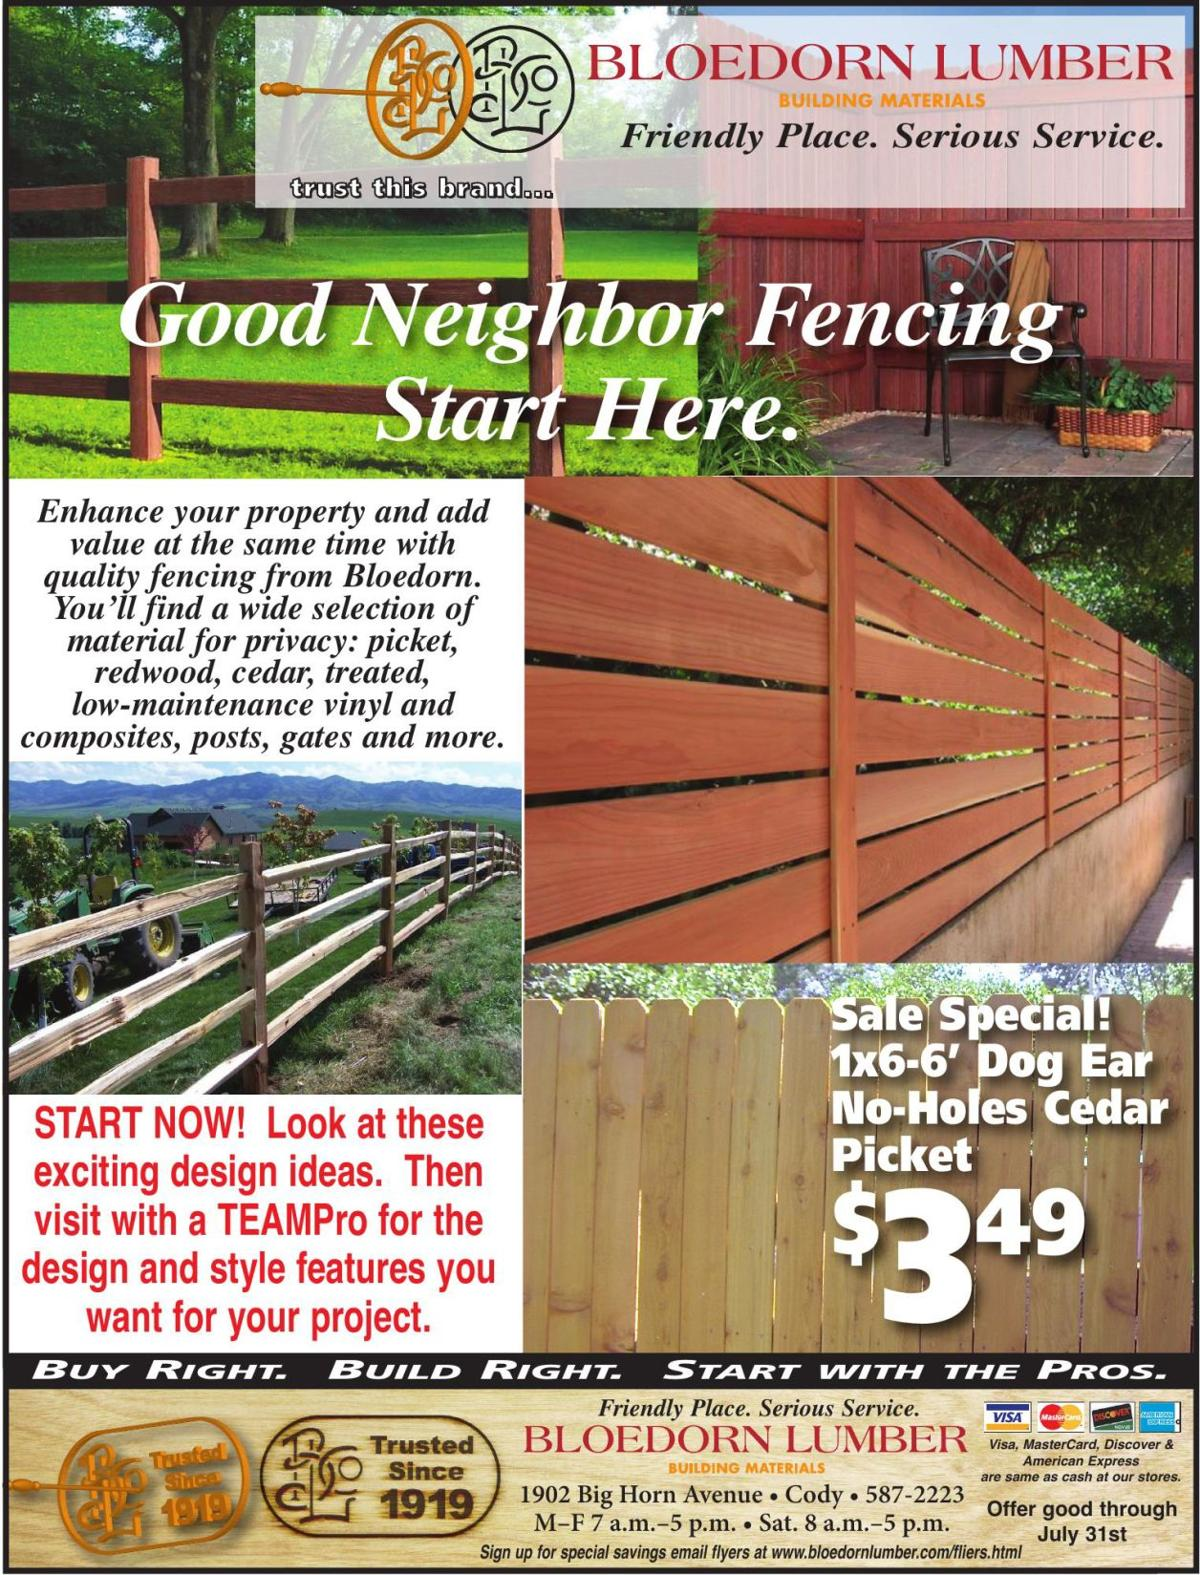 008996_kelin_consulting_good_neighbor_fencing_services